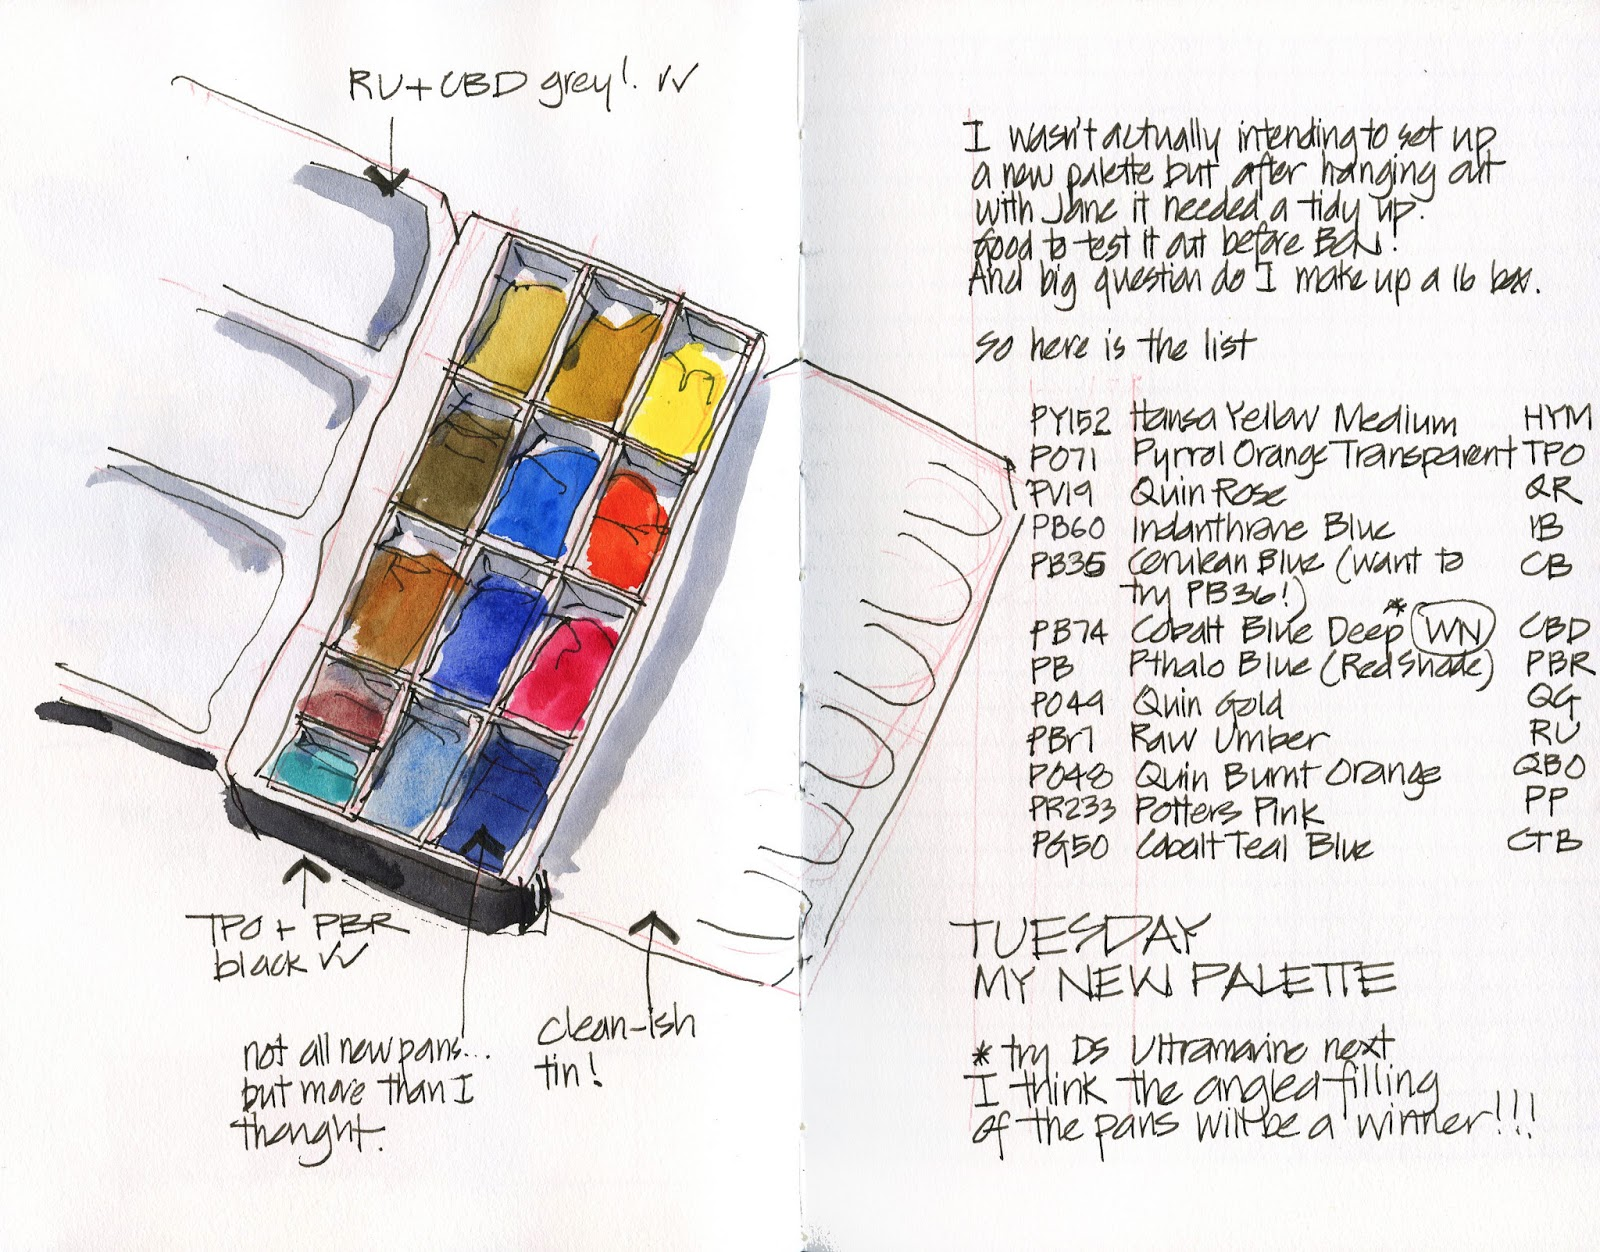 My new palette - after colour mixing with Jane Blundell